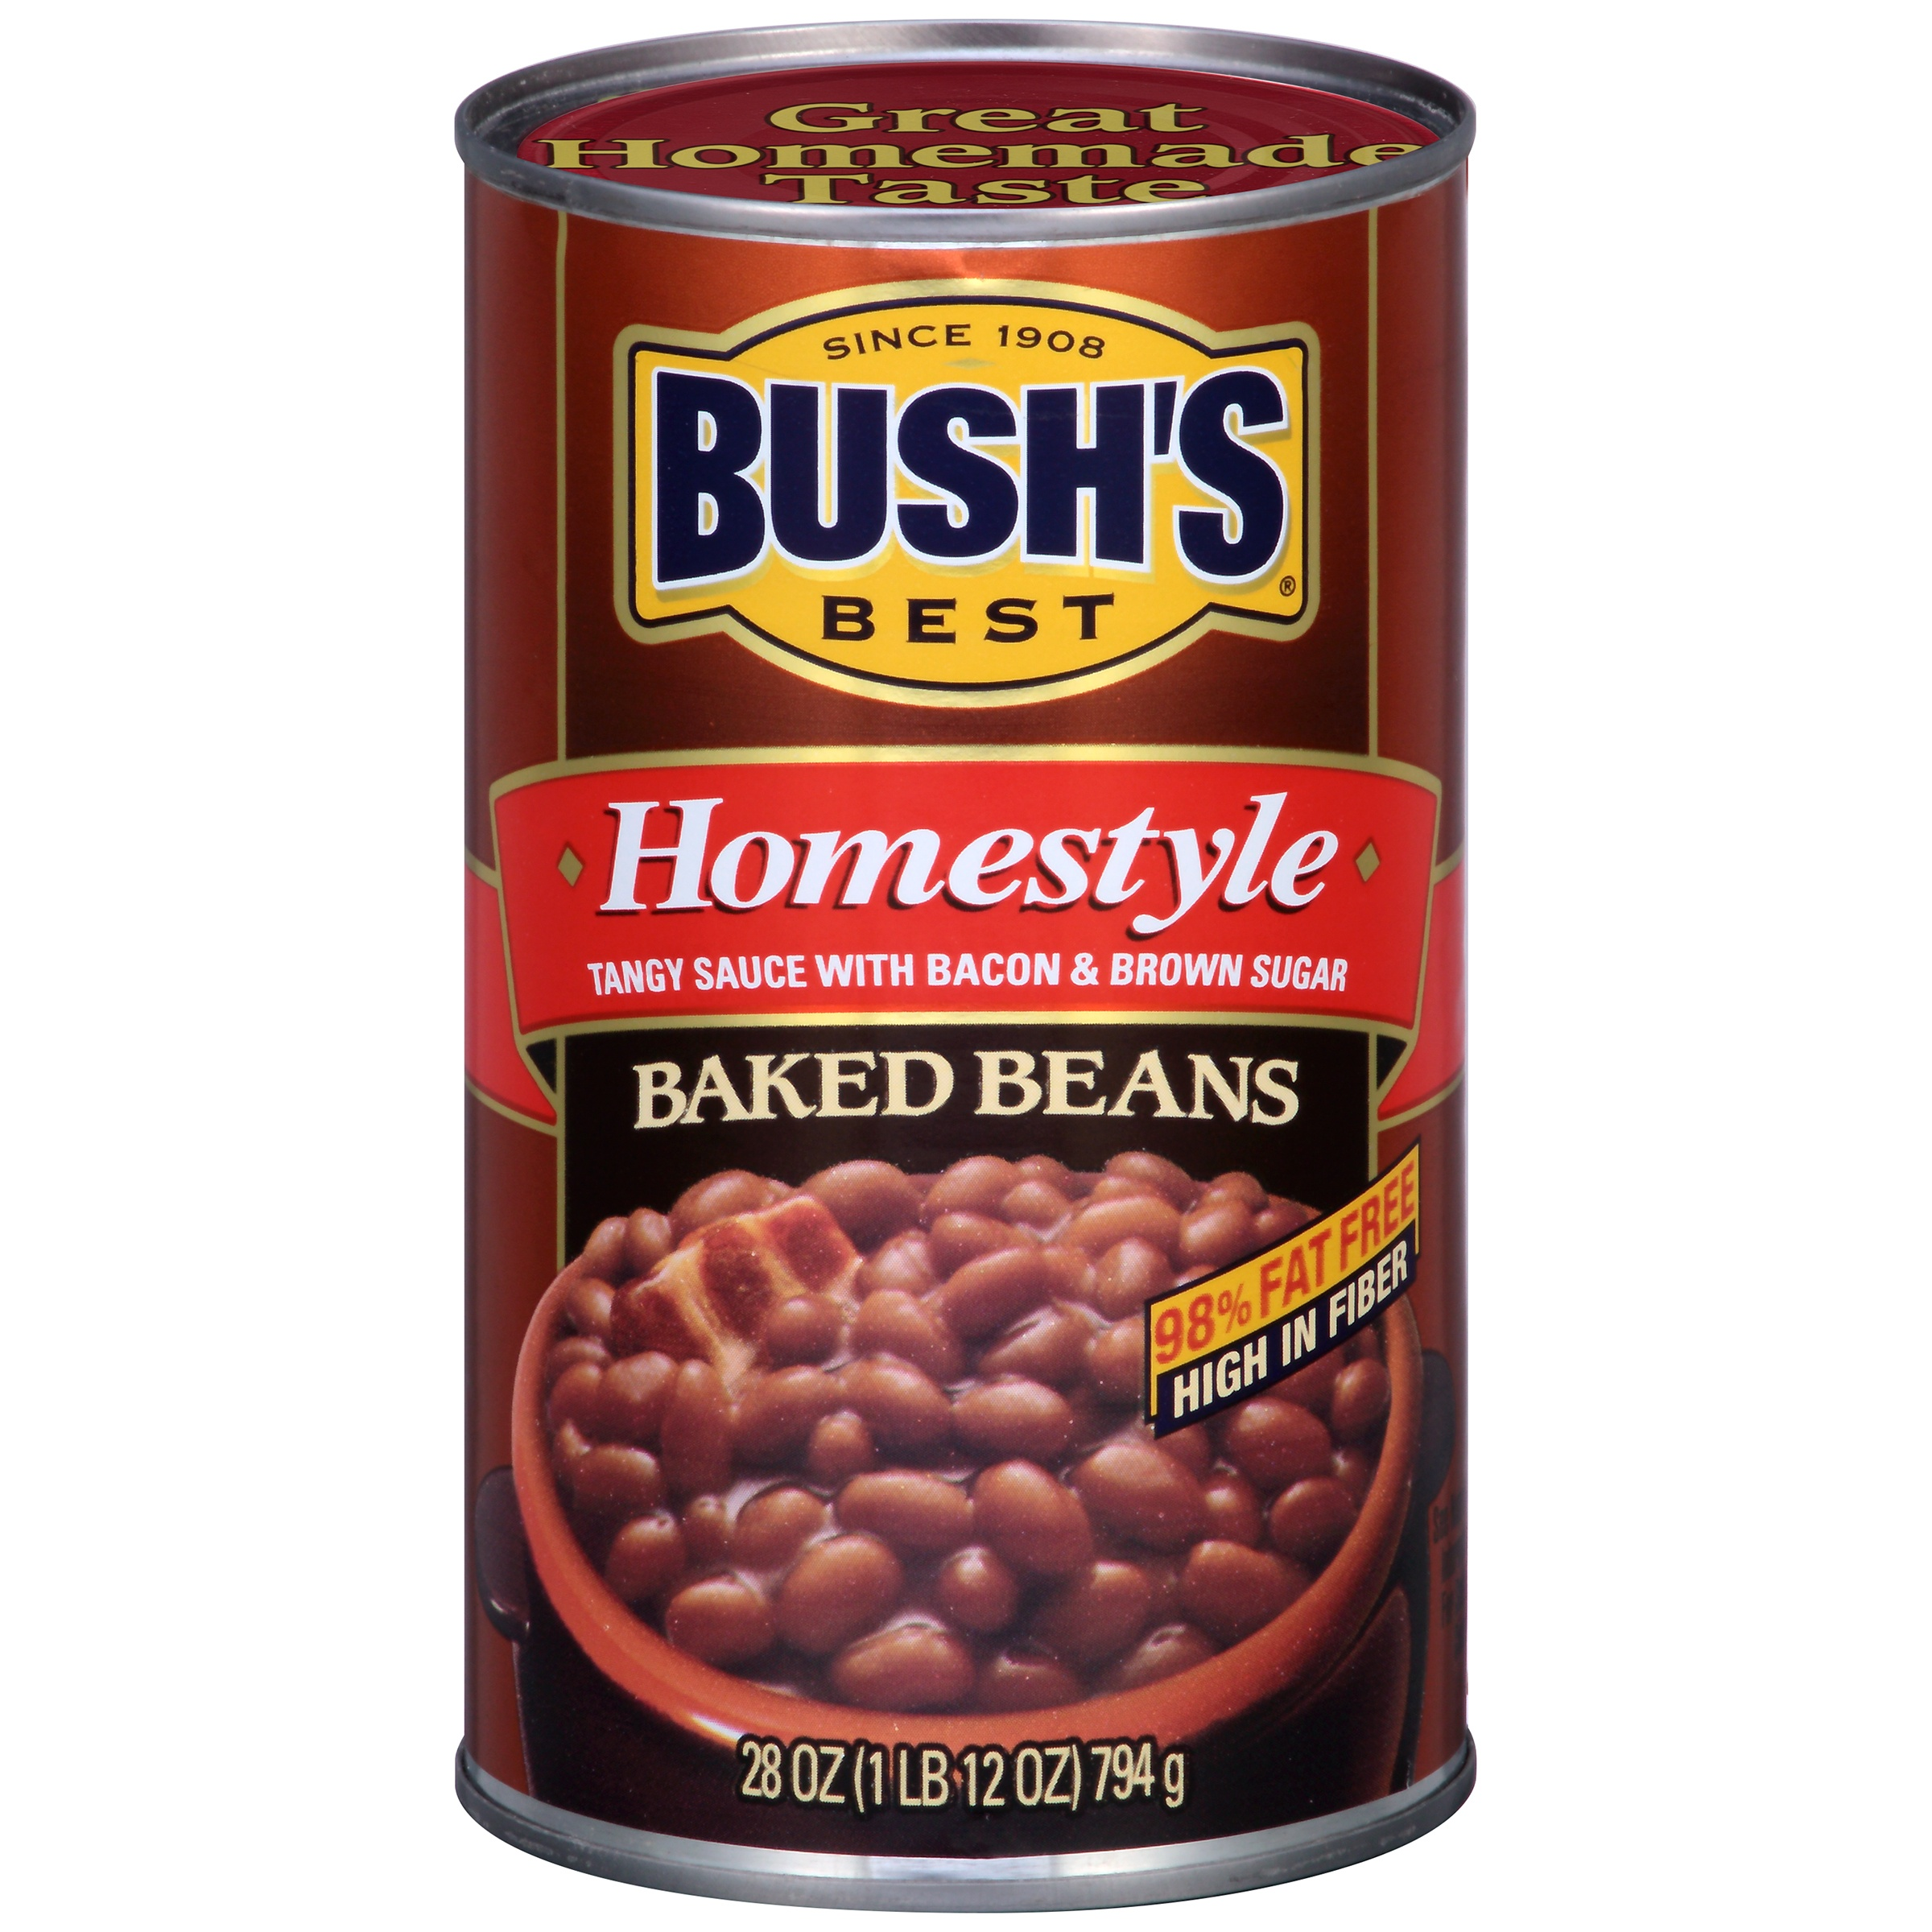 Bushs Best Homestyle Baked Beans, 28 oz by Bush Brothers & Company